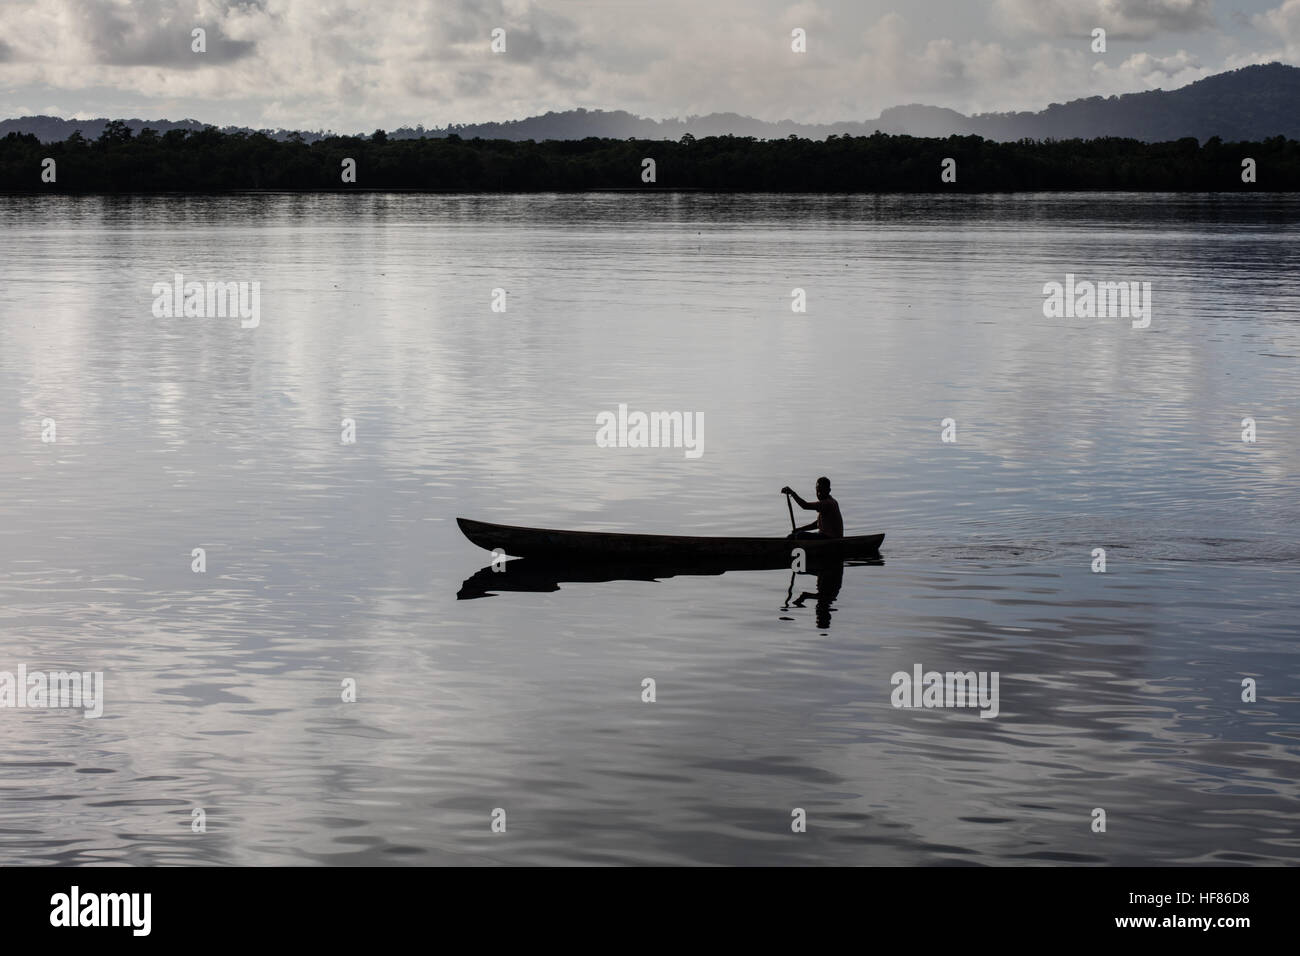 A fisherman paddles his dugout canoe in calm water between remote islands in the Solomon Islands. - Stock Image